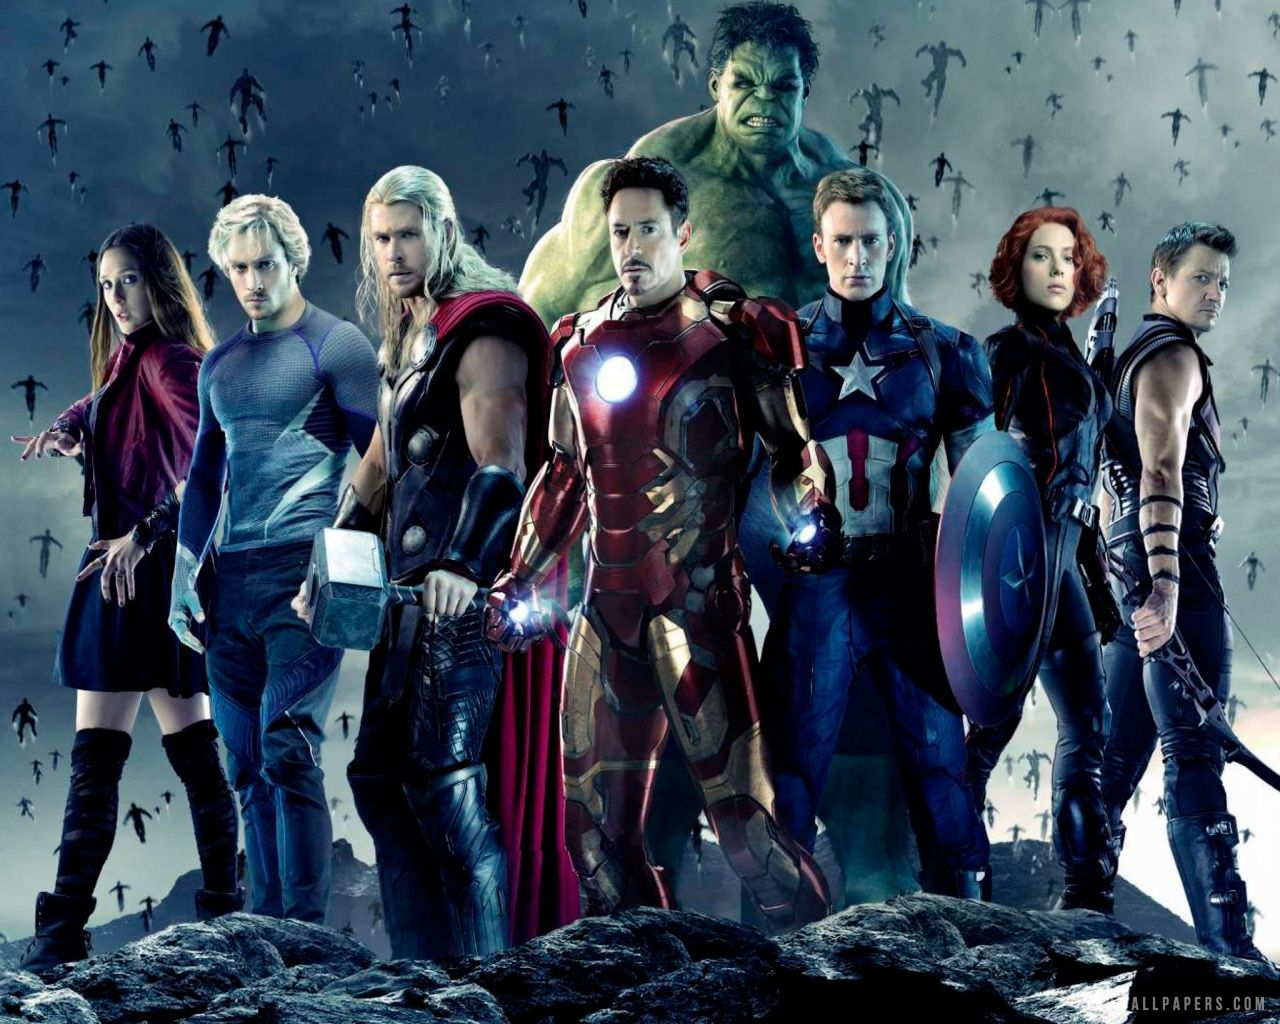 Amazing Wallpaper Marvel Avengers Age Ultron - 027f610522fdc0ee936c88438762387d  You Should Have_85665.jpg